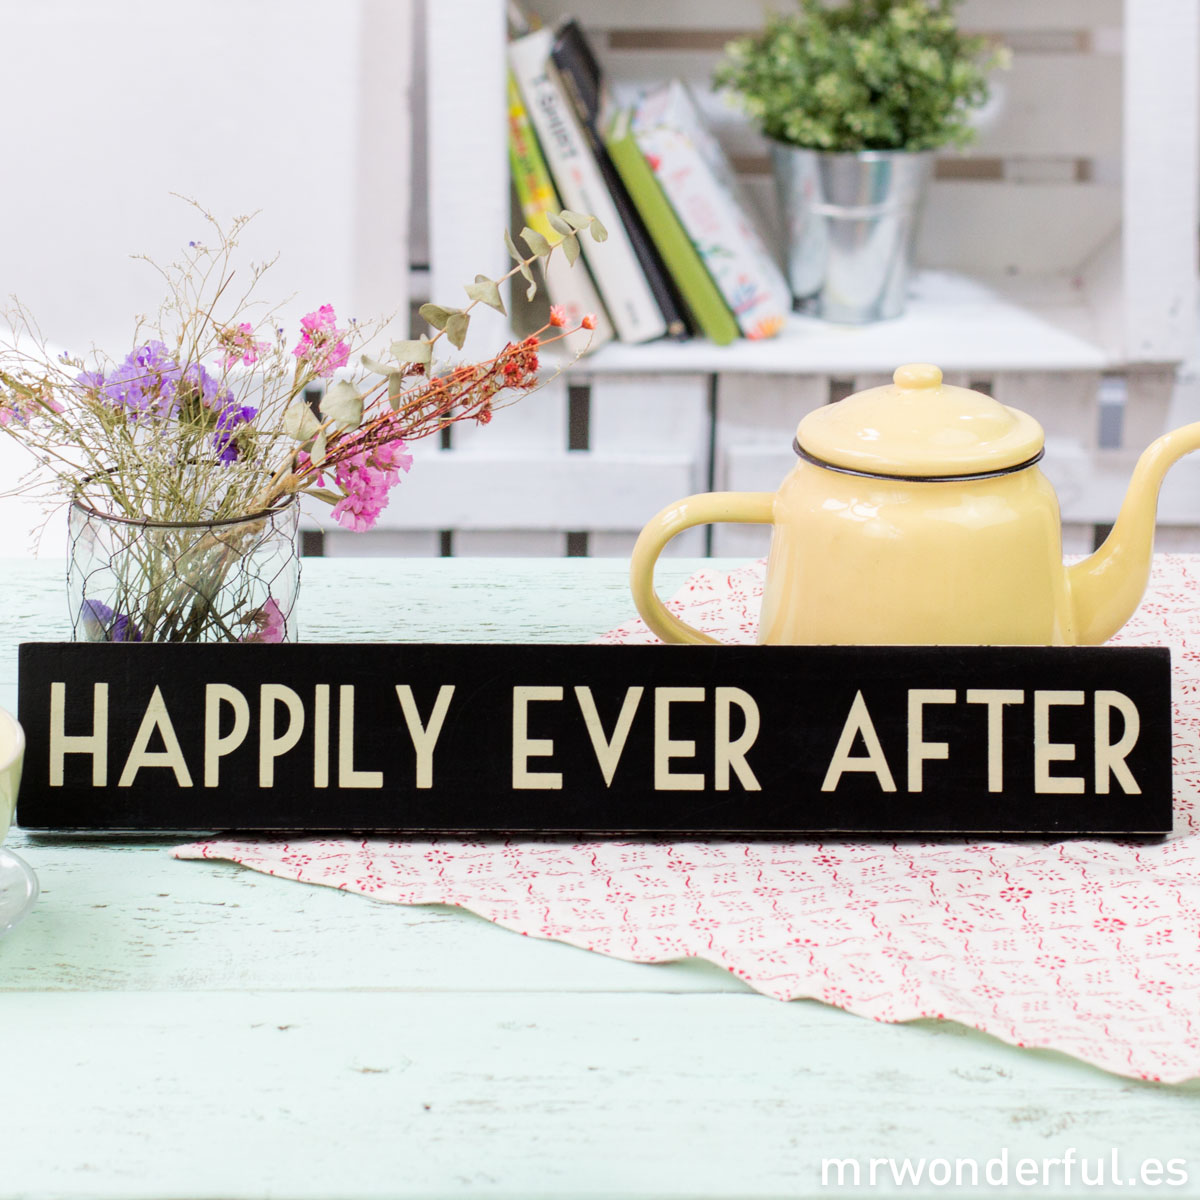 mrwonderful_856_letrero-madera_happily-ever-1-2